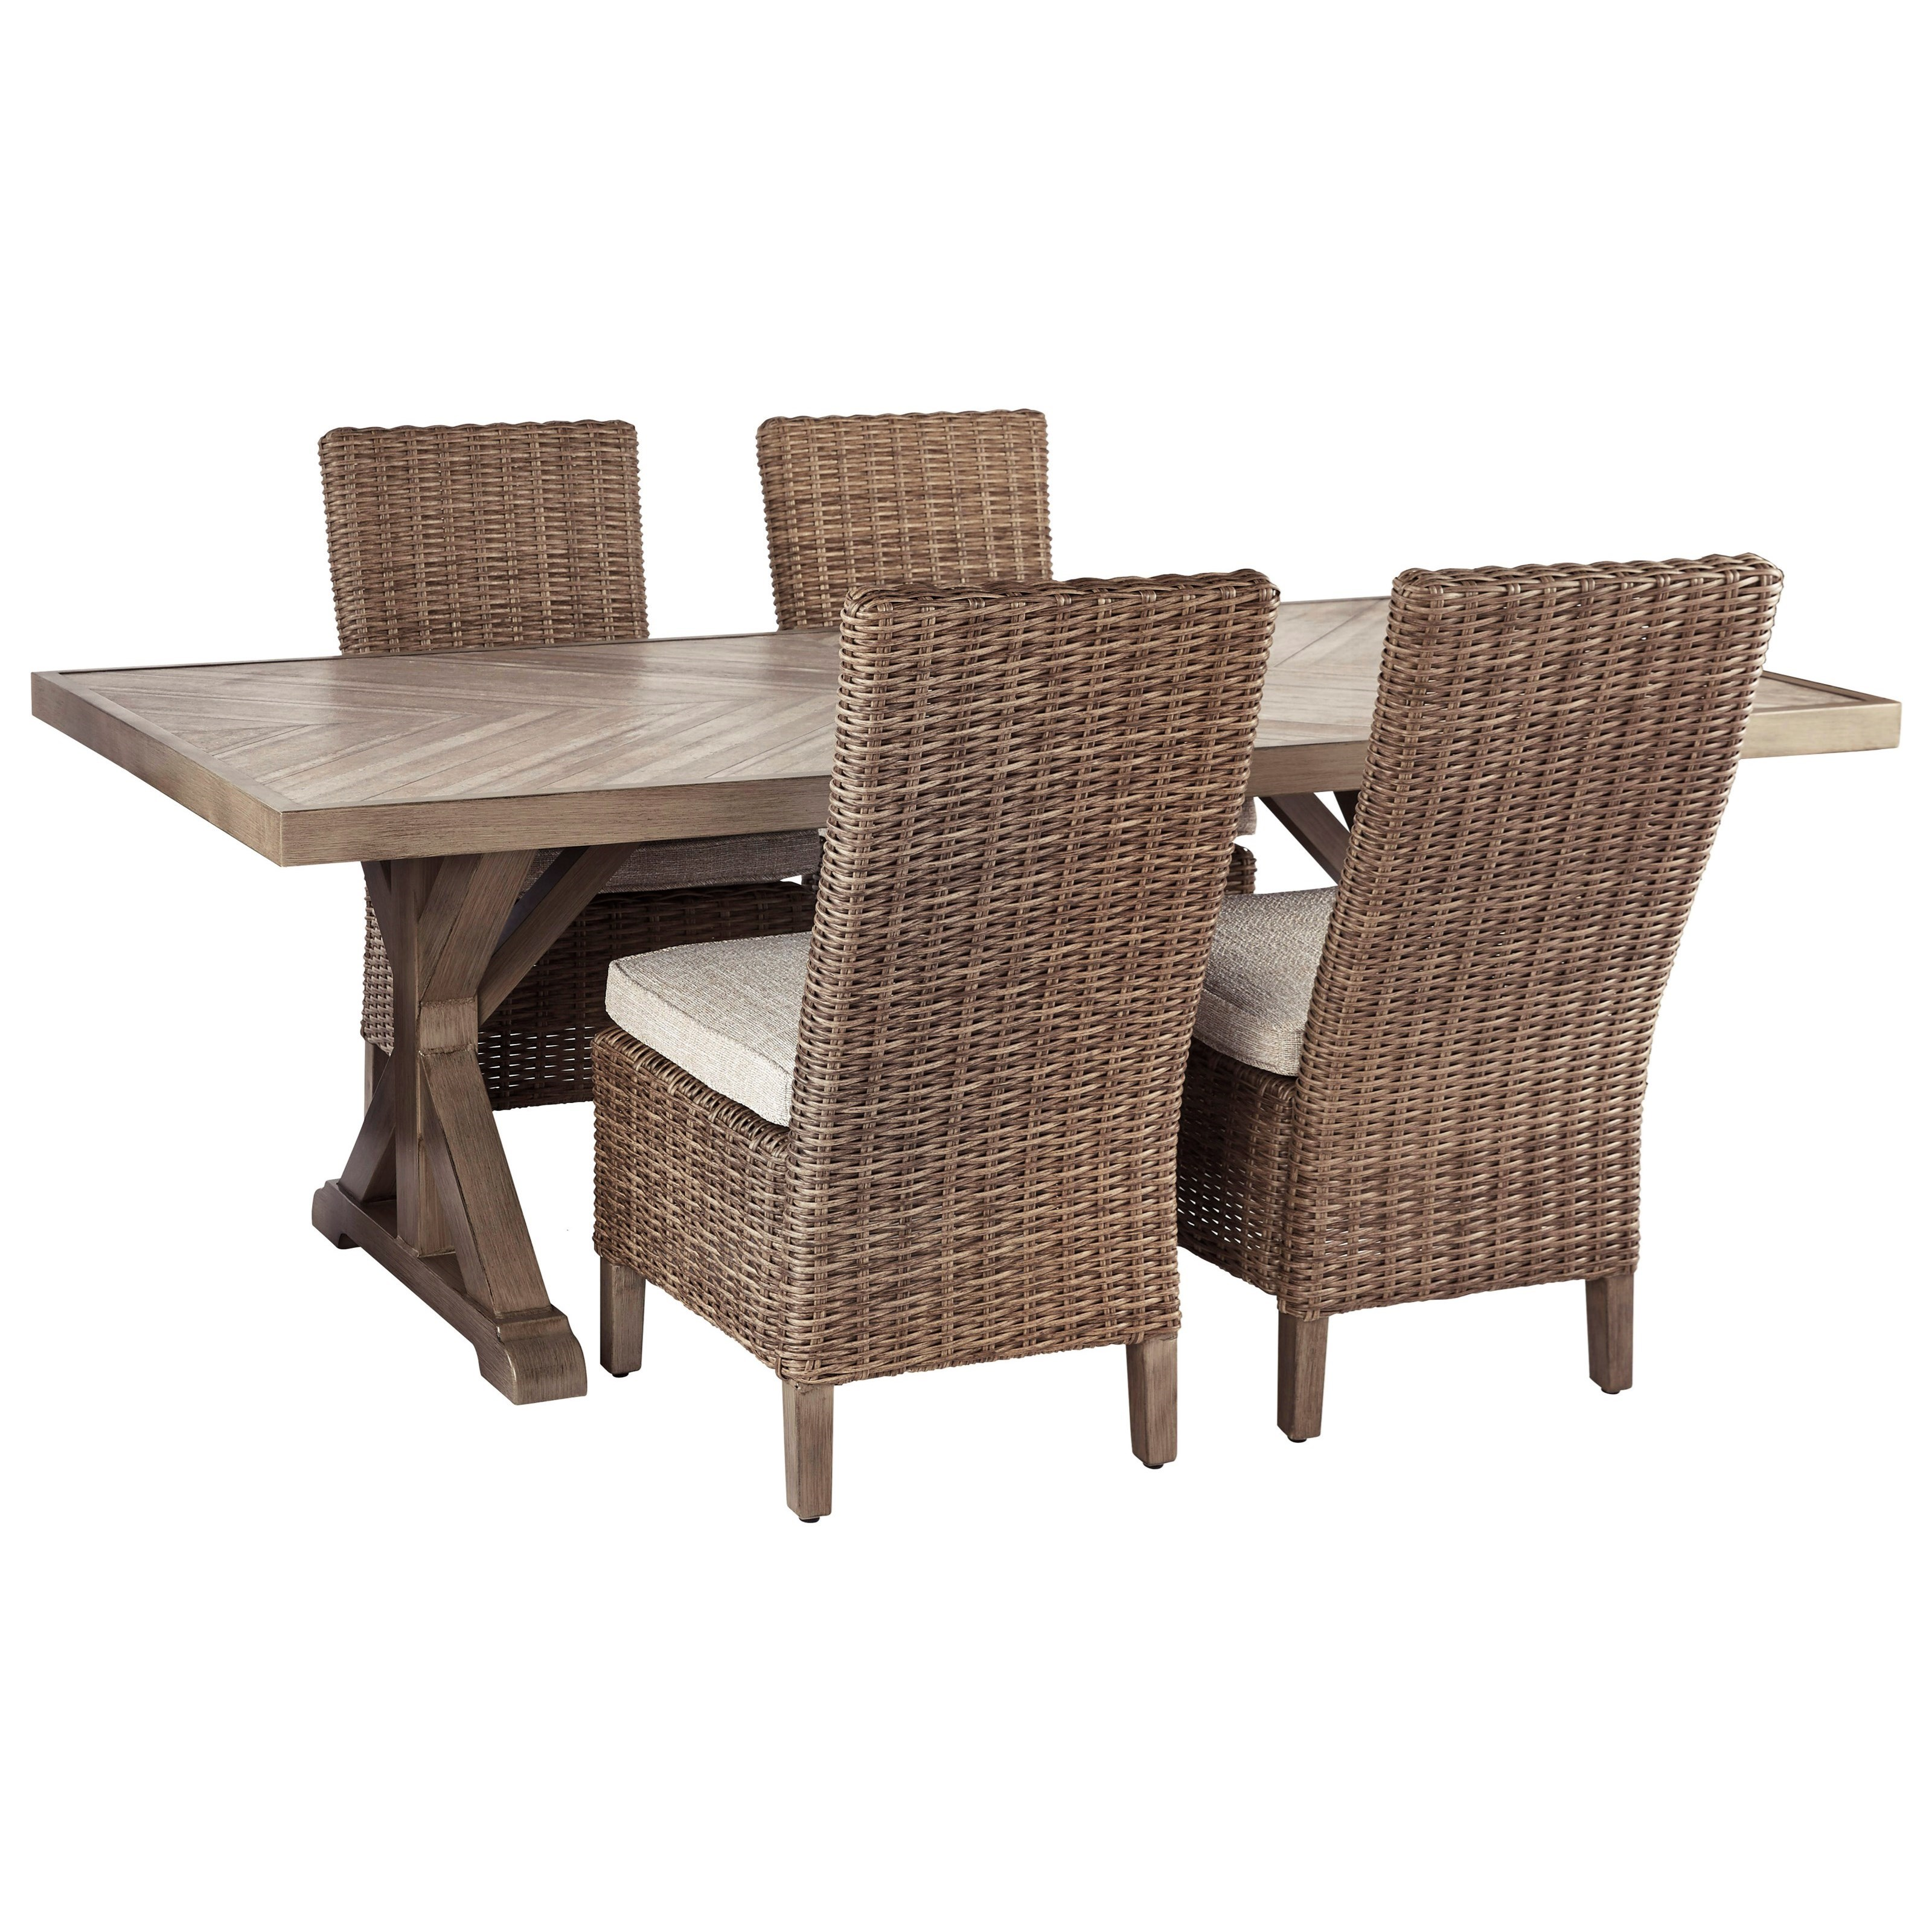 Beachcroft 5 Piece Outdoor Dining Set by Signature at Walker's Furniture